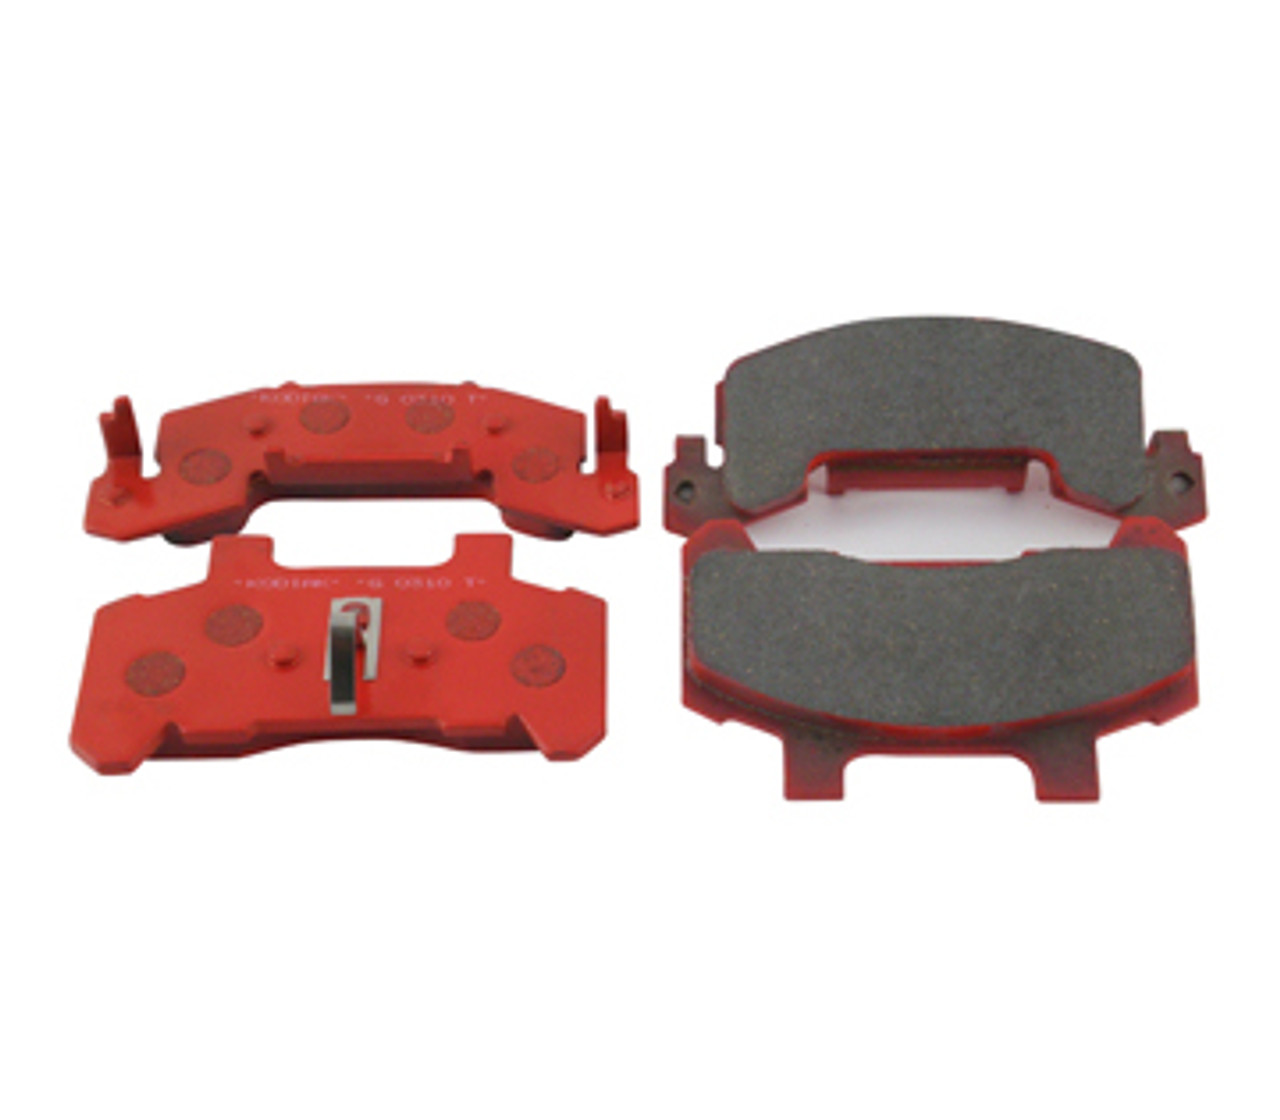 DBC-225-PAD --- Kodiak Ceramic brake pads - One Axle